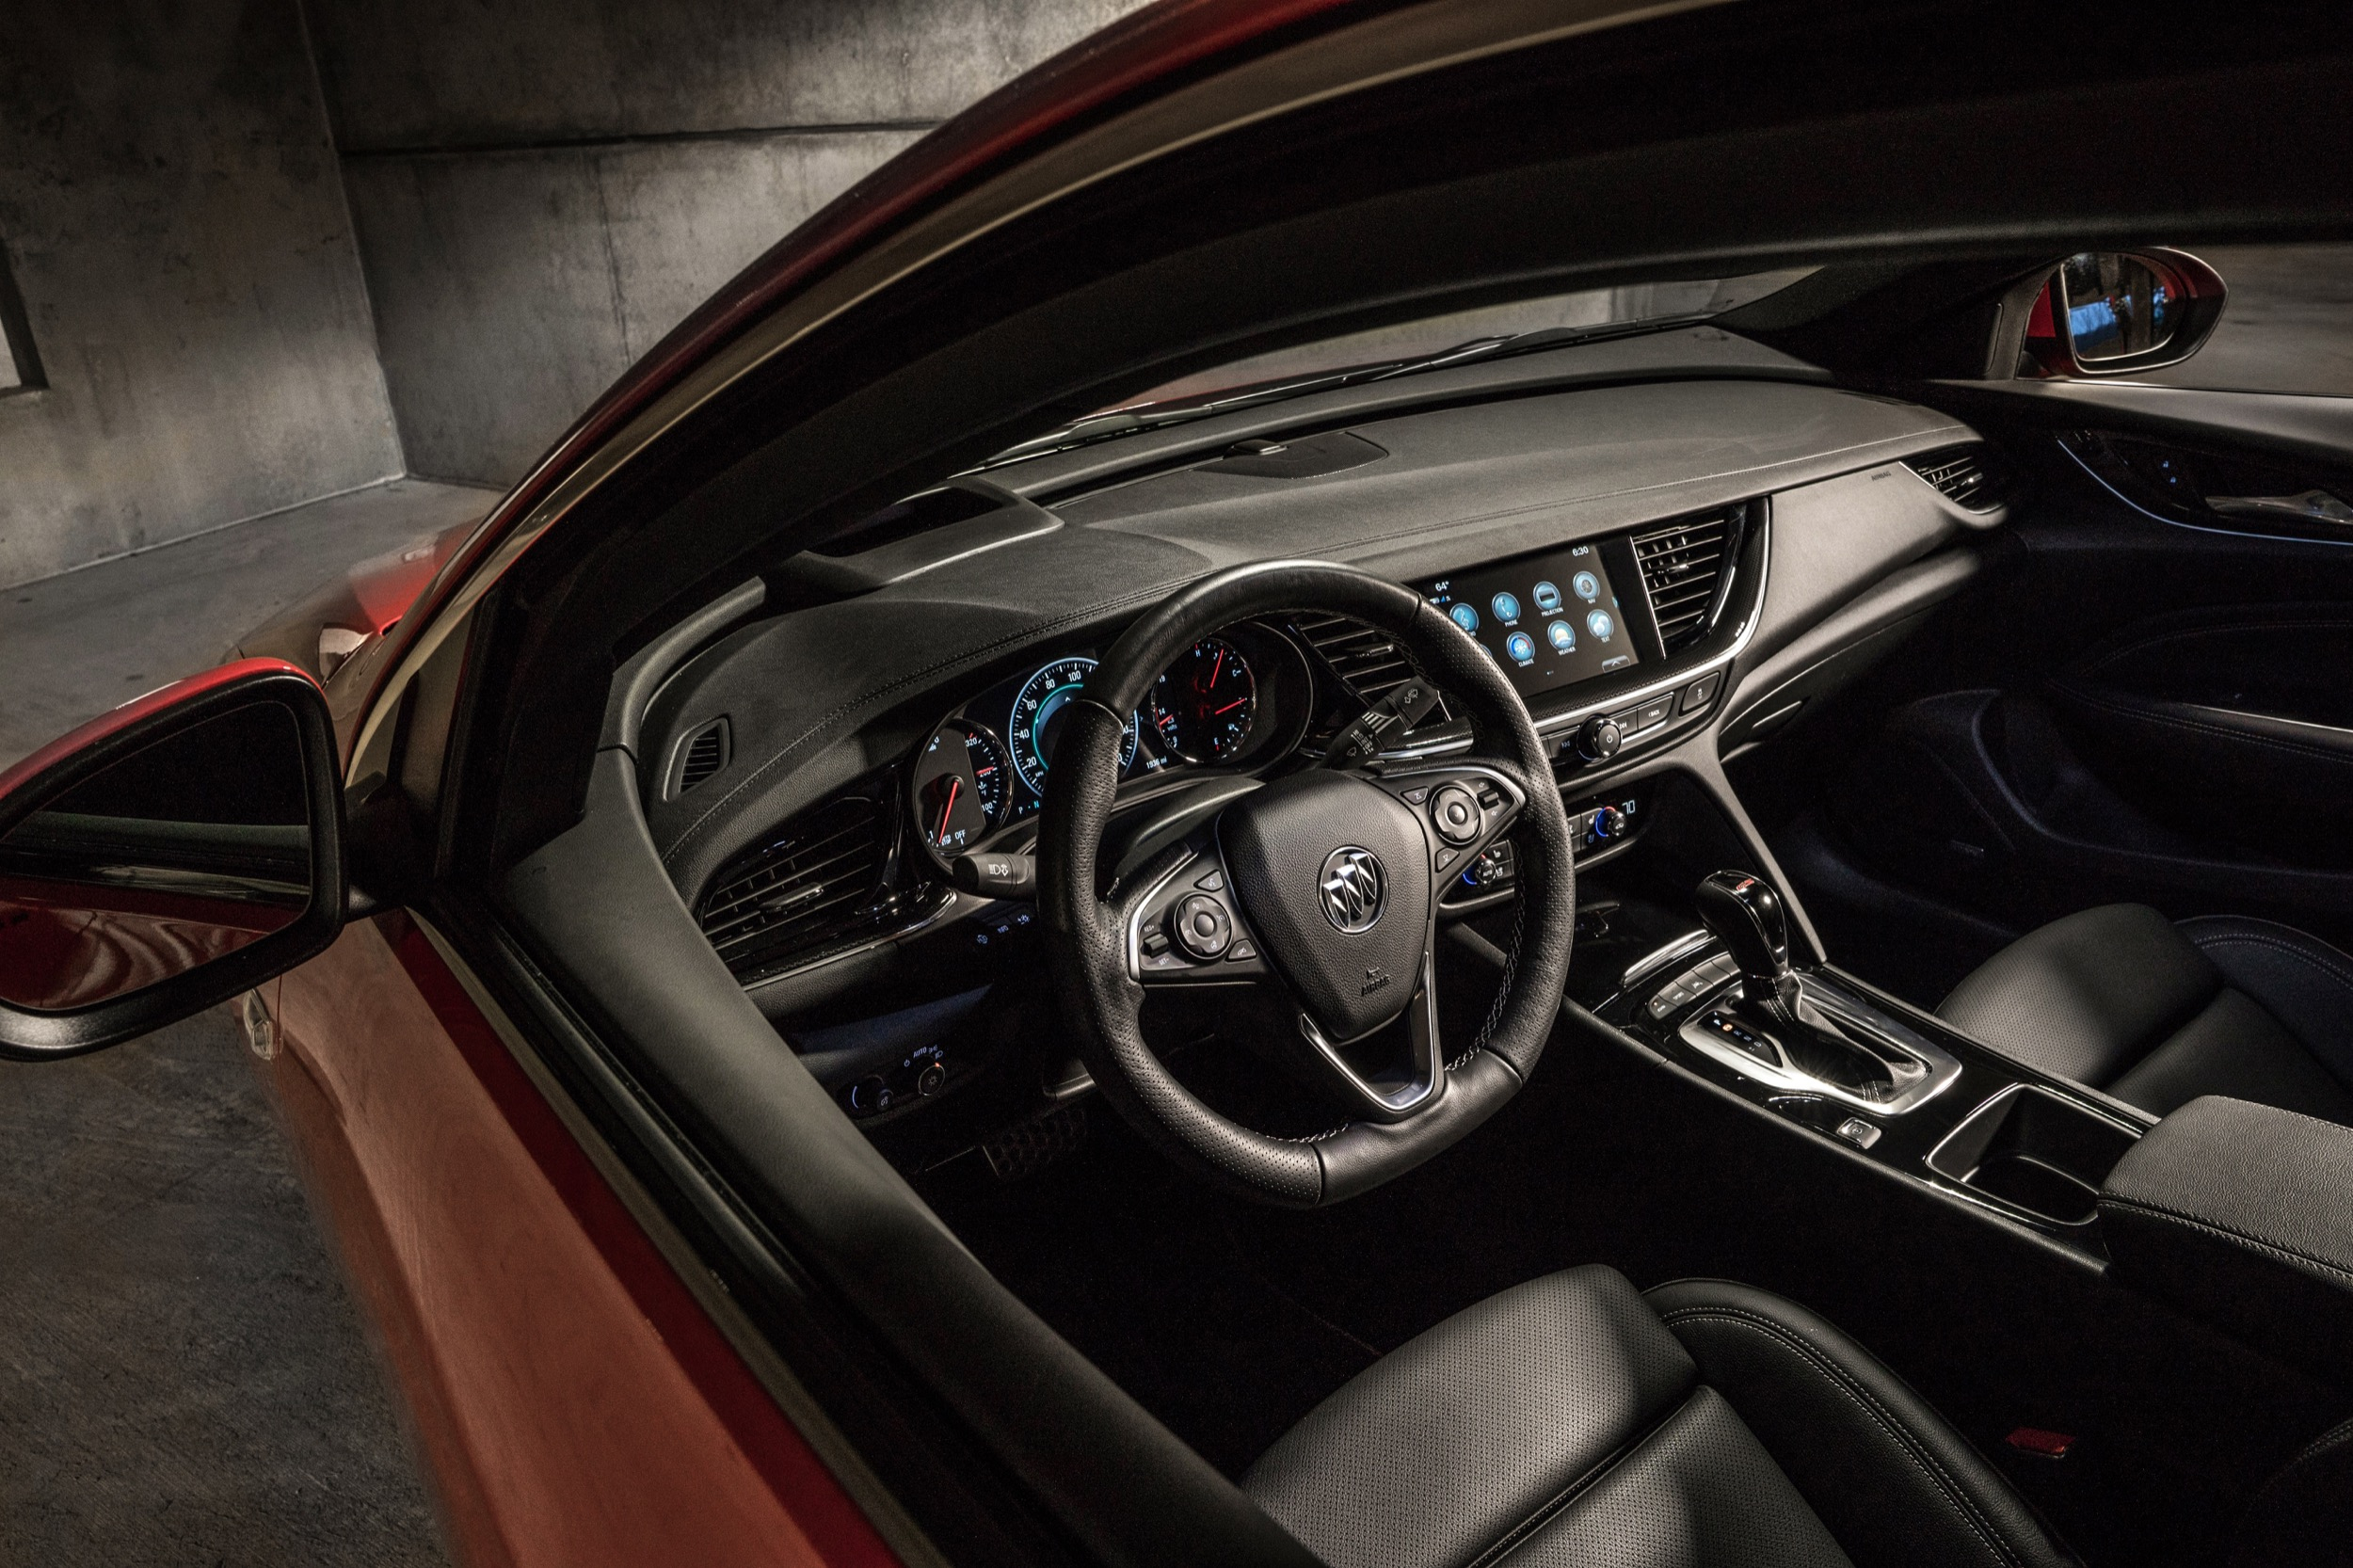 2019 Buick Regal Gs Interior Colors | Gm Authority New 2022 Buick Regal Sportback Interior, Awd, Colors